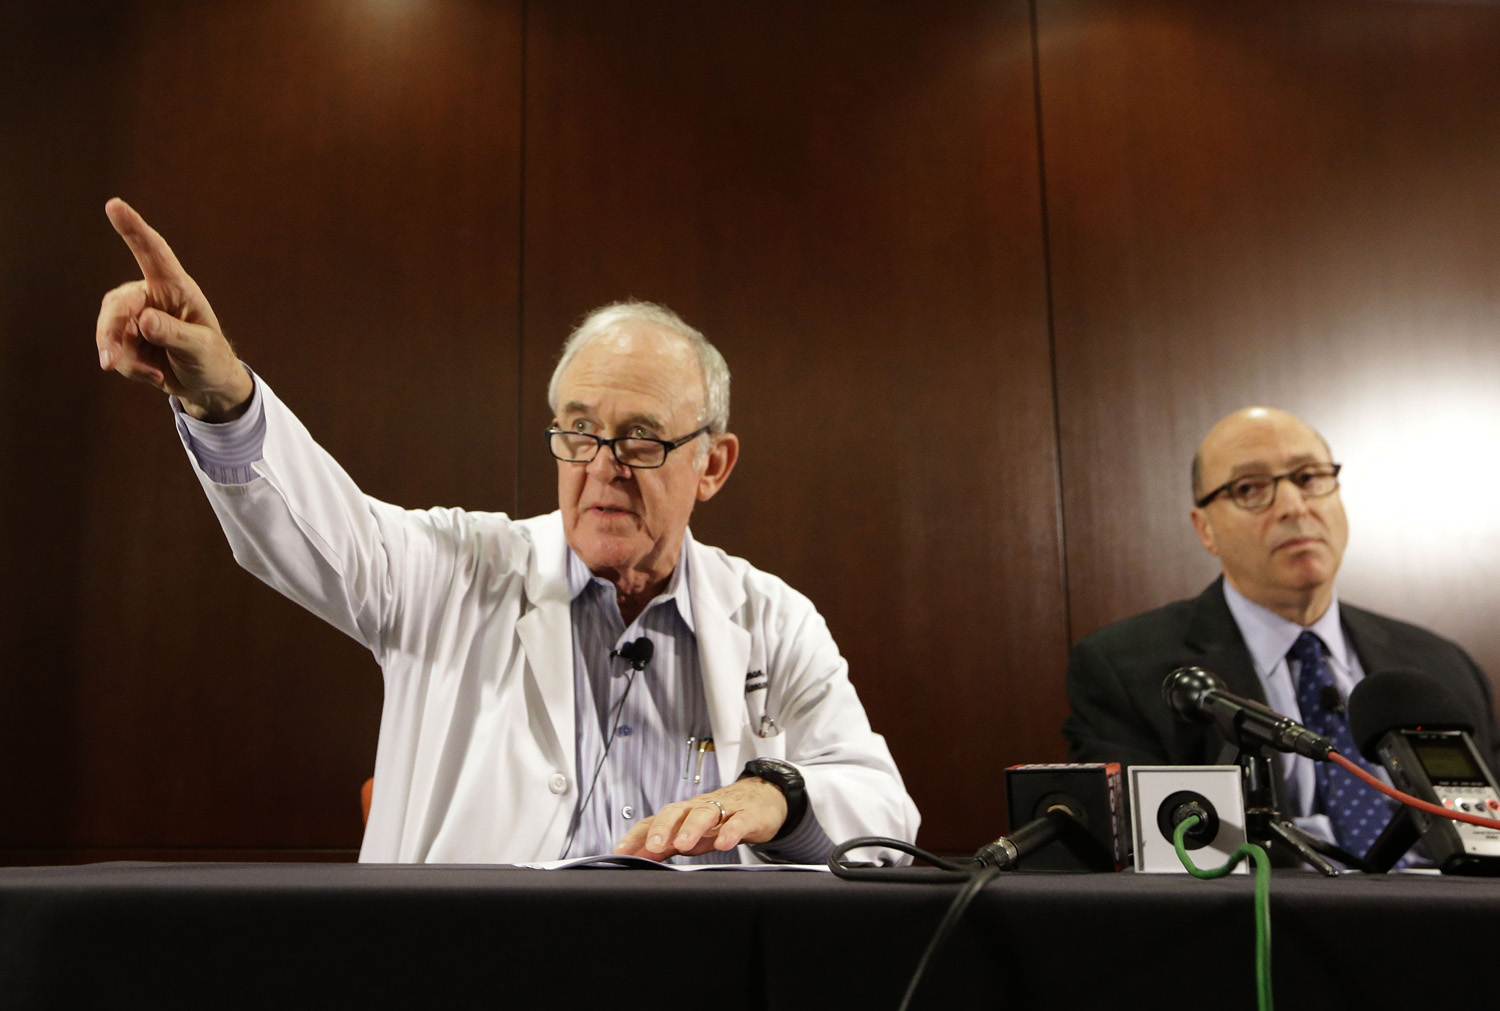 Dr. Edward Goodman, left, epidemiologist at Texas Health Presbyterian Hospital Dallas, points to a reporter for a question as Dr. Mark Lester looks on during a news conference about an Ebola infected patient they are caring for in Dallas, Sept. 30, 2014.